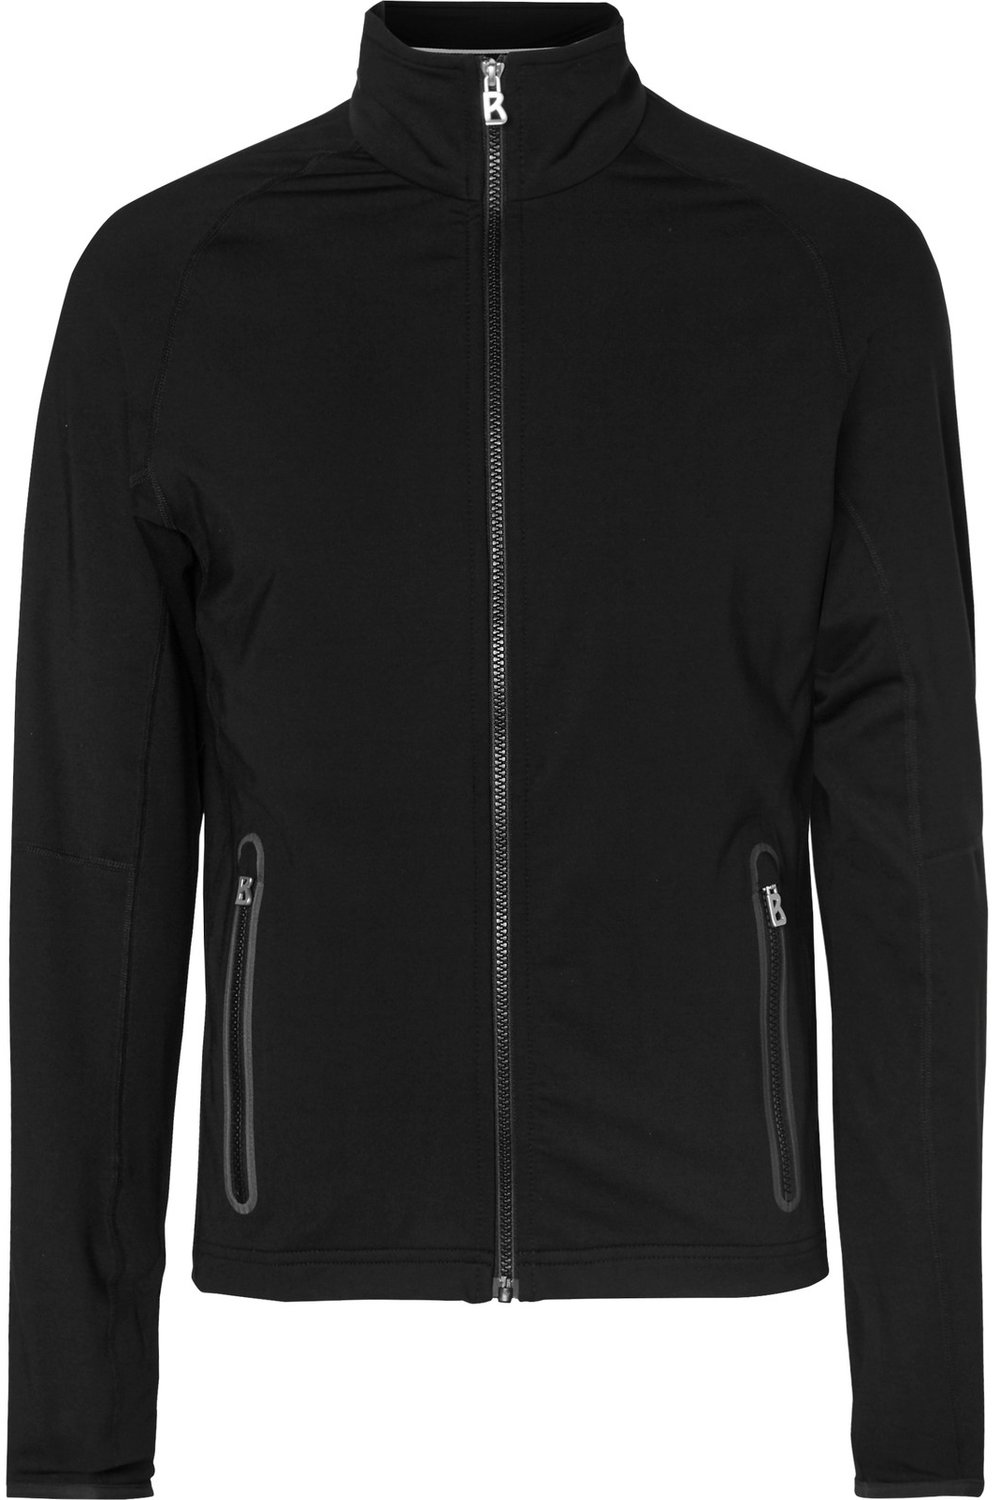 Bogner Tom Stretch-Jersey Mid-Layer Jacket at Mr. Porter, $500